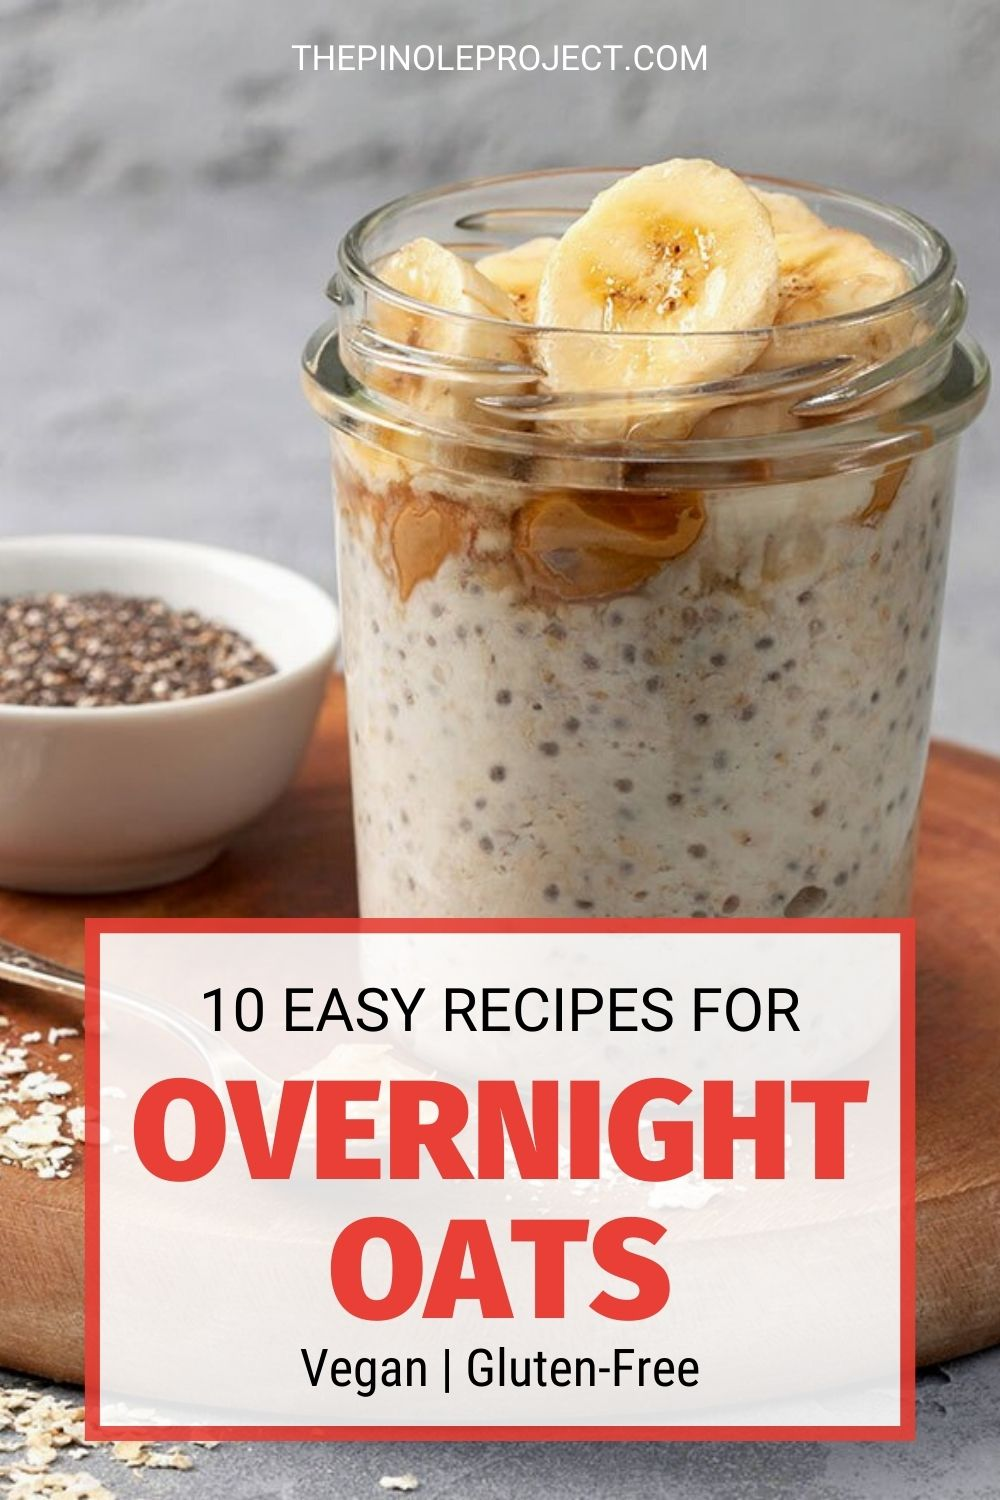 10 Easy Overnight Oats Recipes Picture